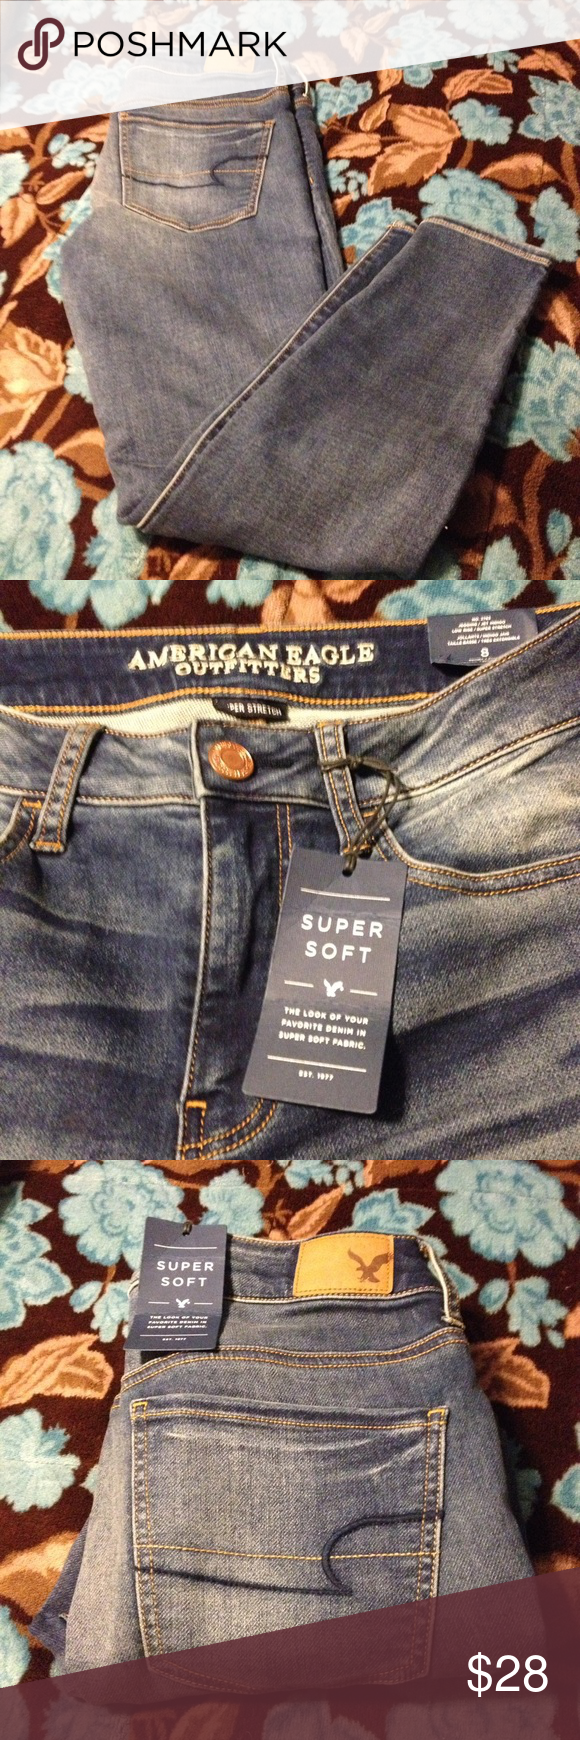 American Eagle Jeggings NWT American Eagle Jeggings size 8 Short. Super soft, super stretch, low rise indigo Jegging. 86%Cotton 13%Polyester 1%Elastane. Length 35 Inseam 26 1/2. American Eagle Outfitters Jeans